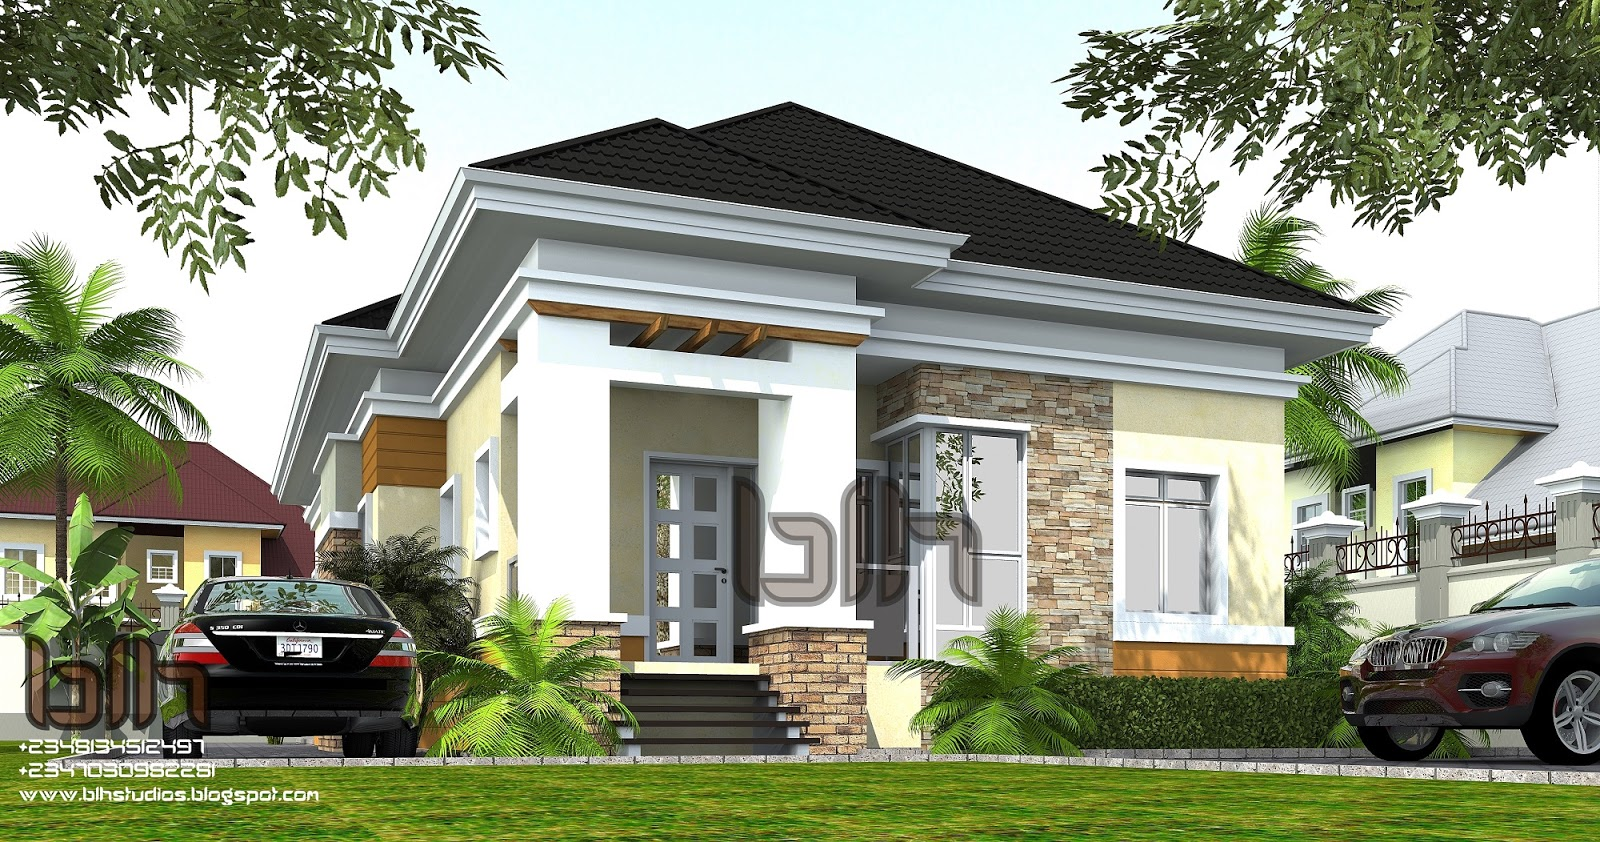 Architectural designs by blacklakehouse 3 bedroom for 4 bedroom bungalow architectural design